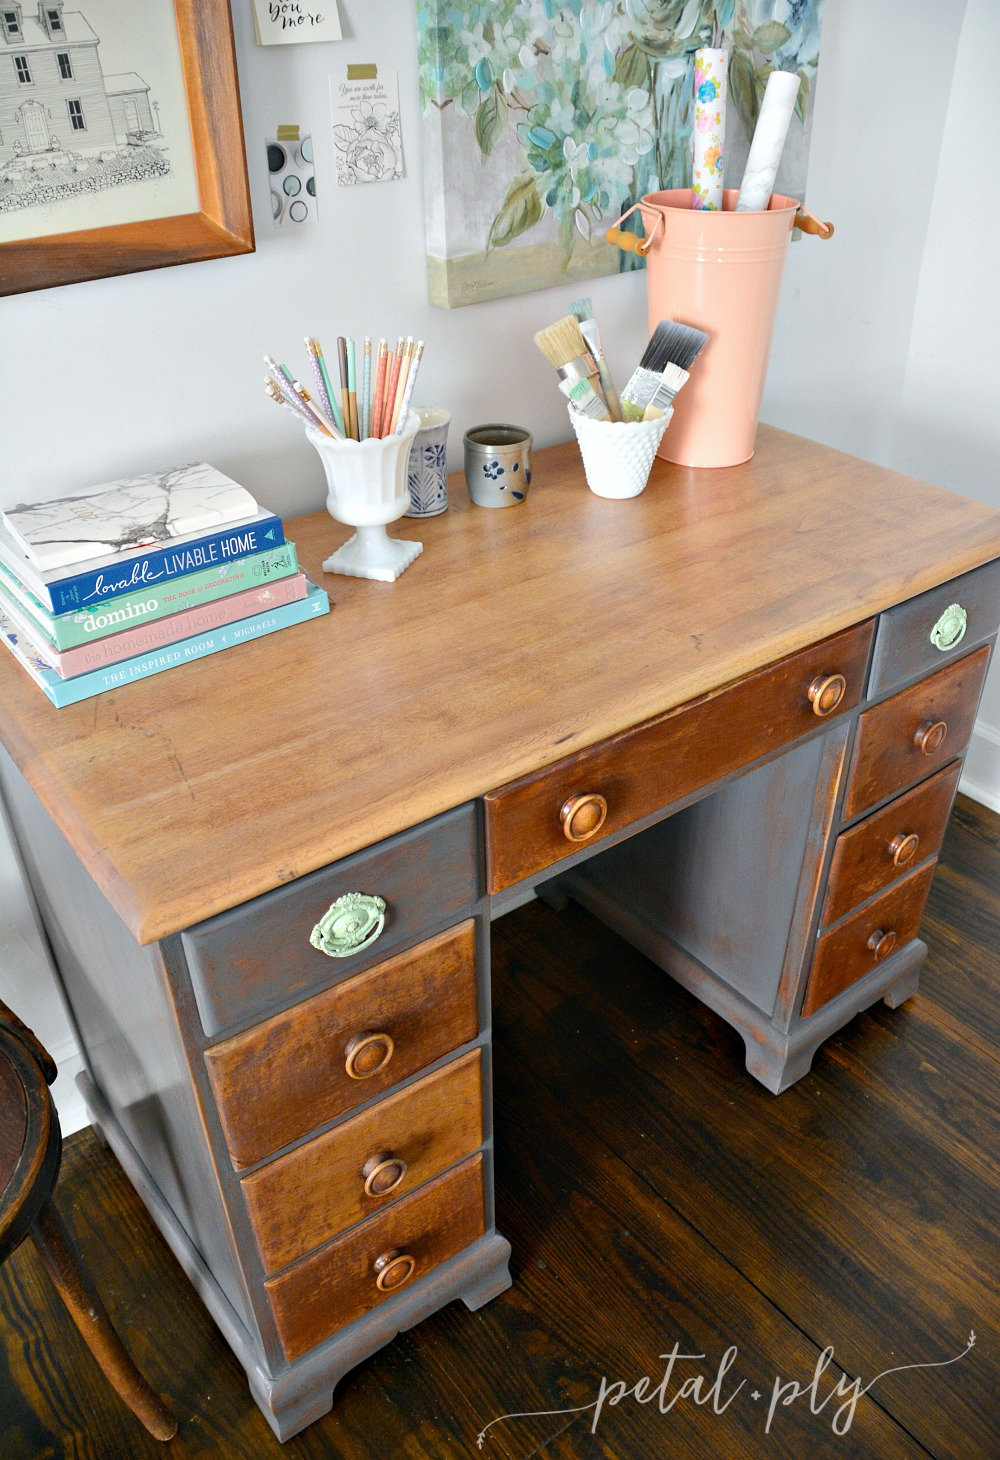 diy-painted-desk-redo-top-weathered-wood-stain